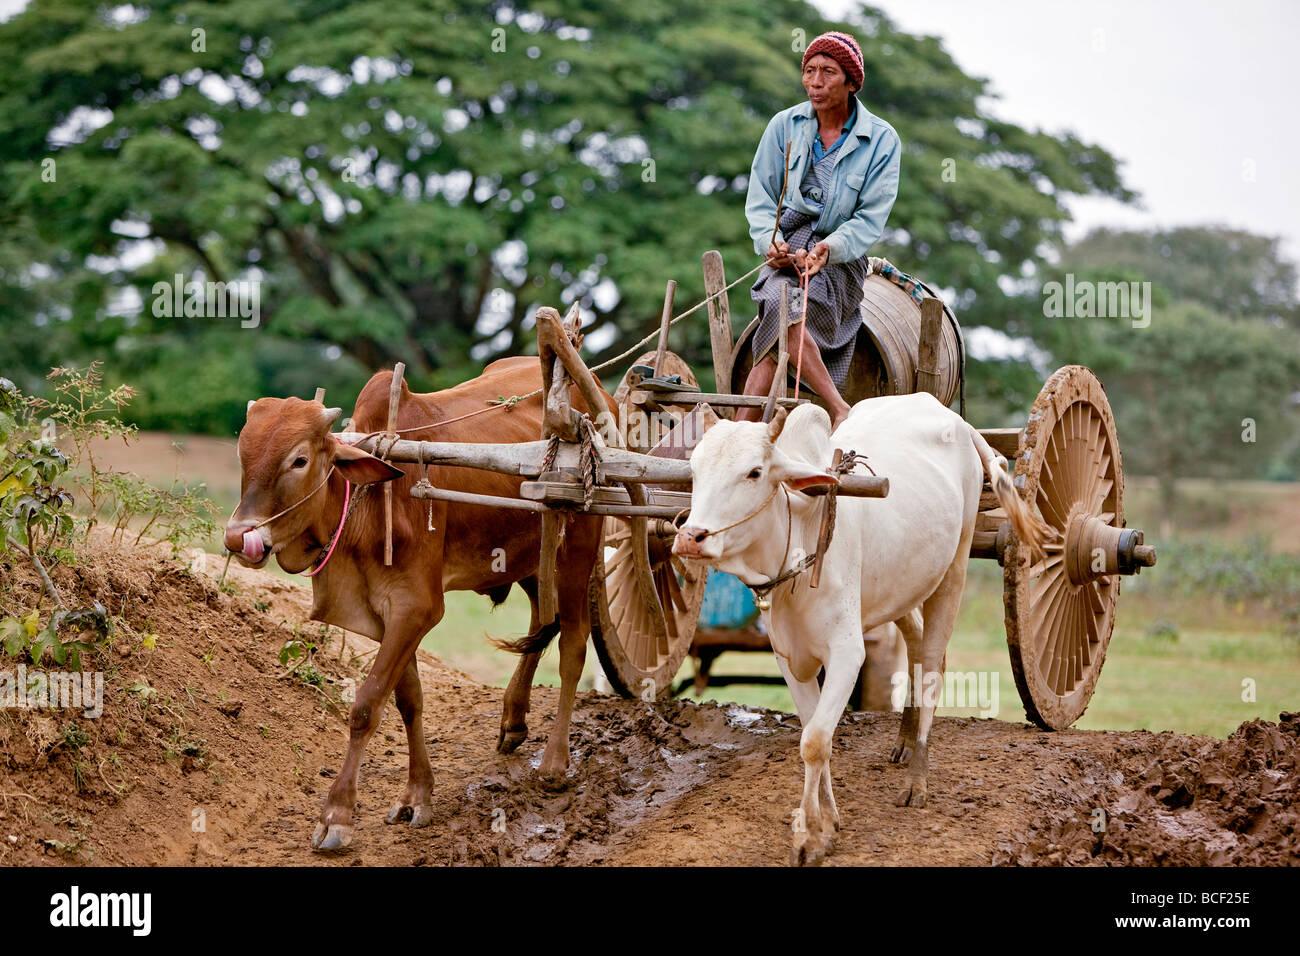 Myanmar. Burma. Bagan. A Burmese man drives his ox cart to a dam to collect water in a locally made wooden barrel. - Stock Image